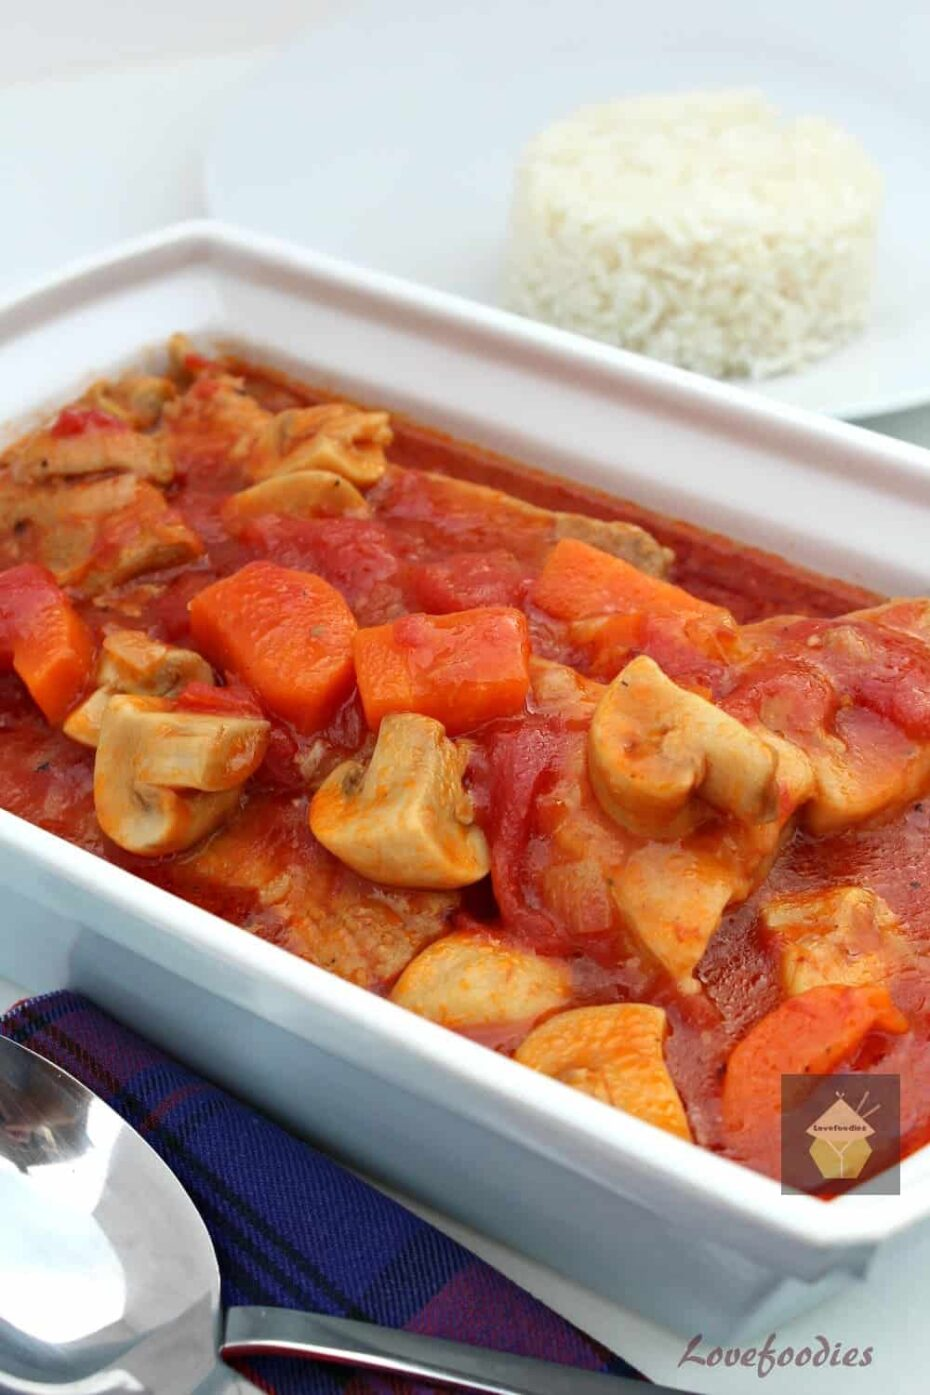 Delicious Tomato and Pork Casserole, tender pork, carrots, and mushrooms in a fresh tomato sauce, all cooked in one pan on the stovetop, multicooker or oven.